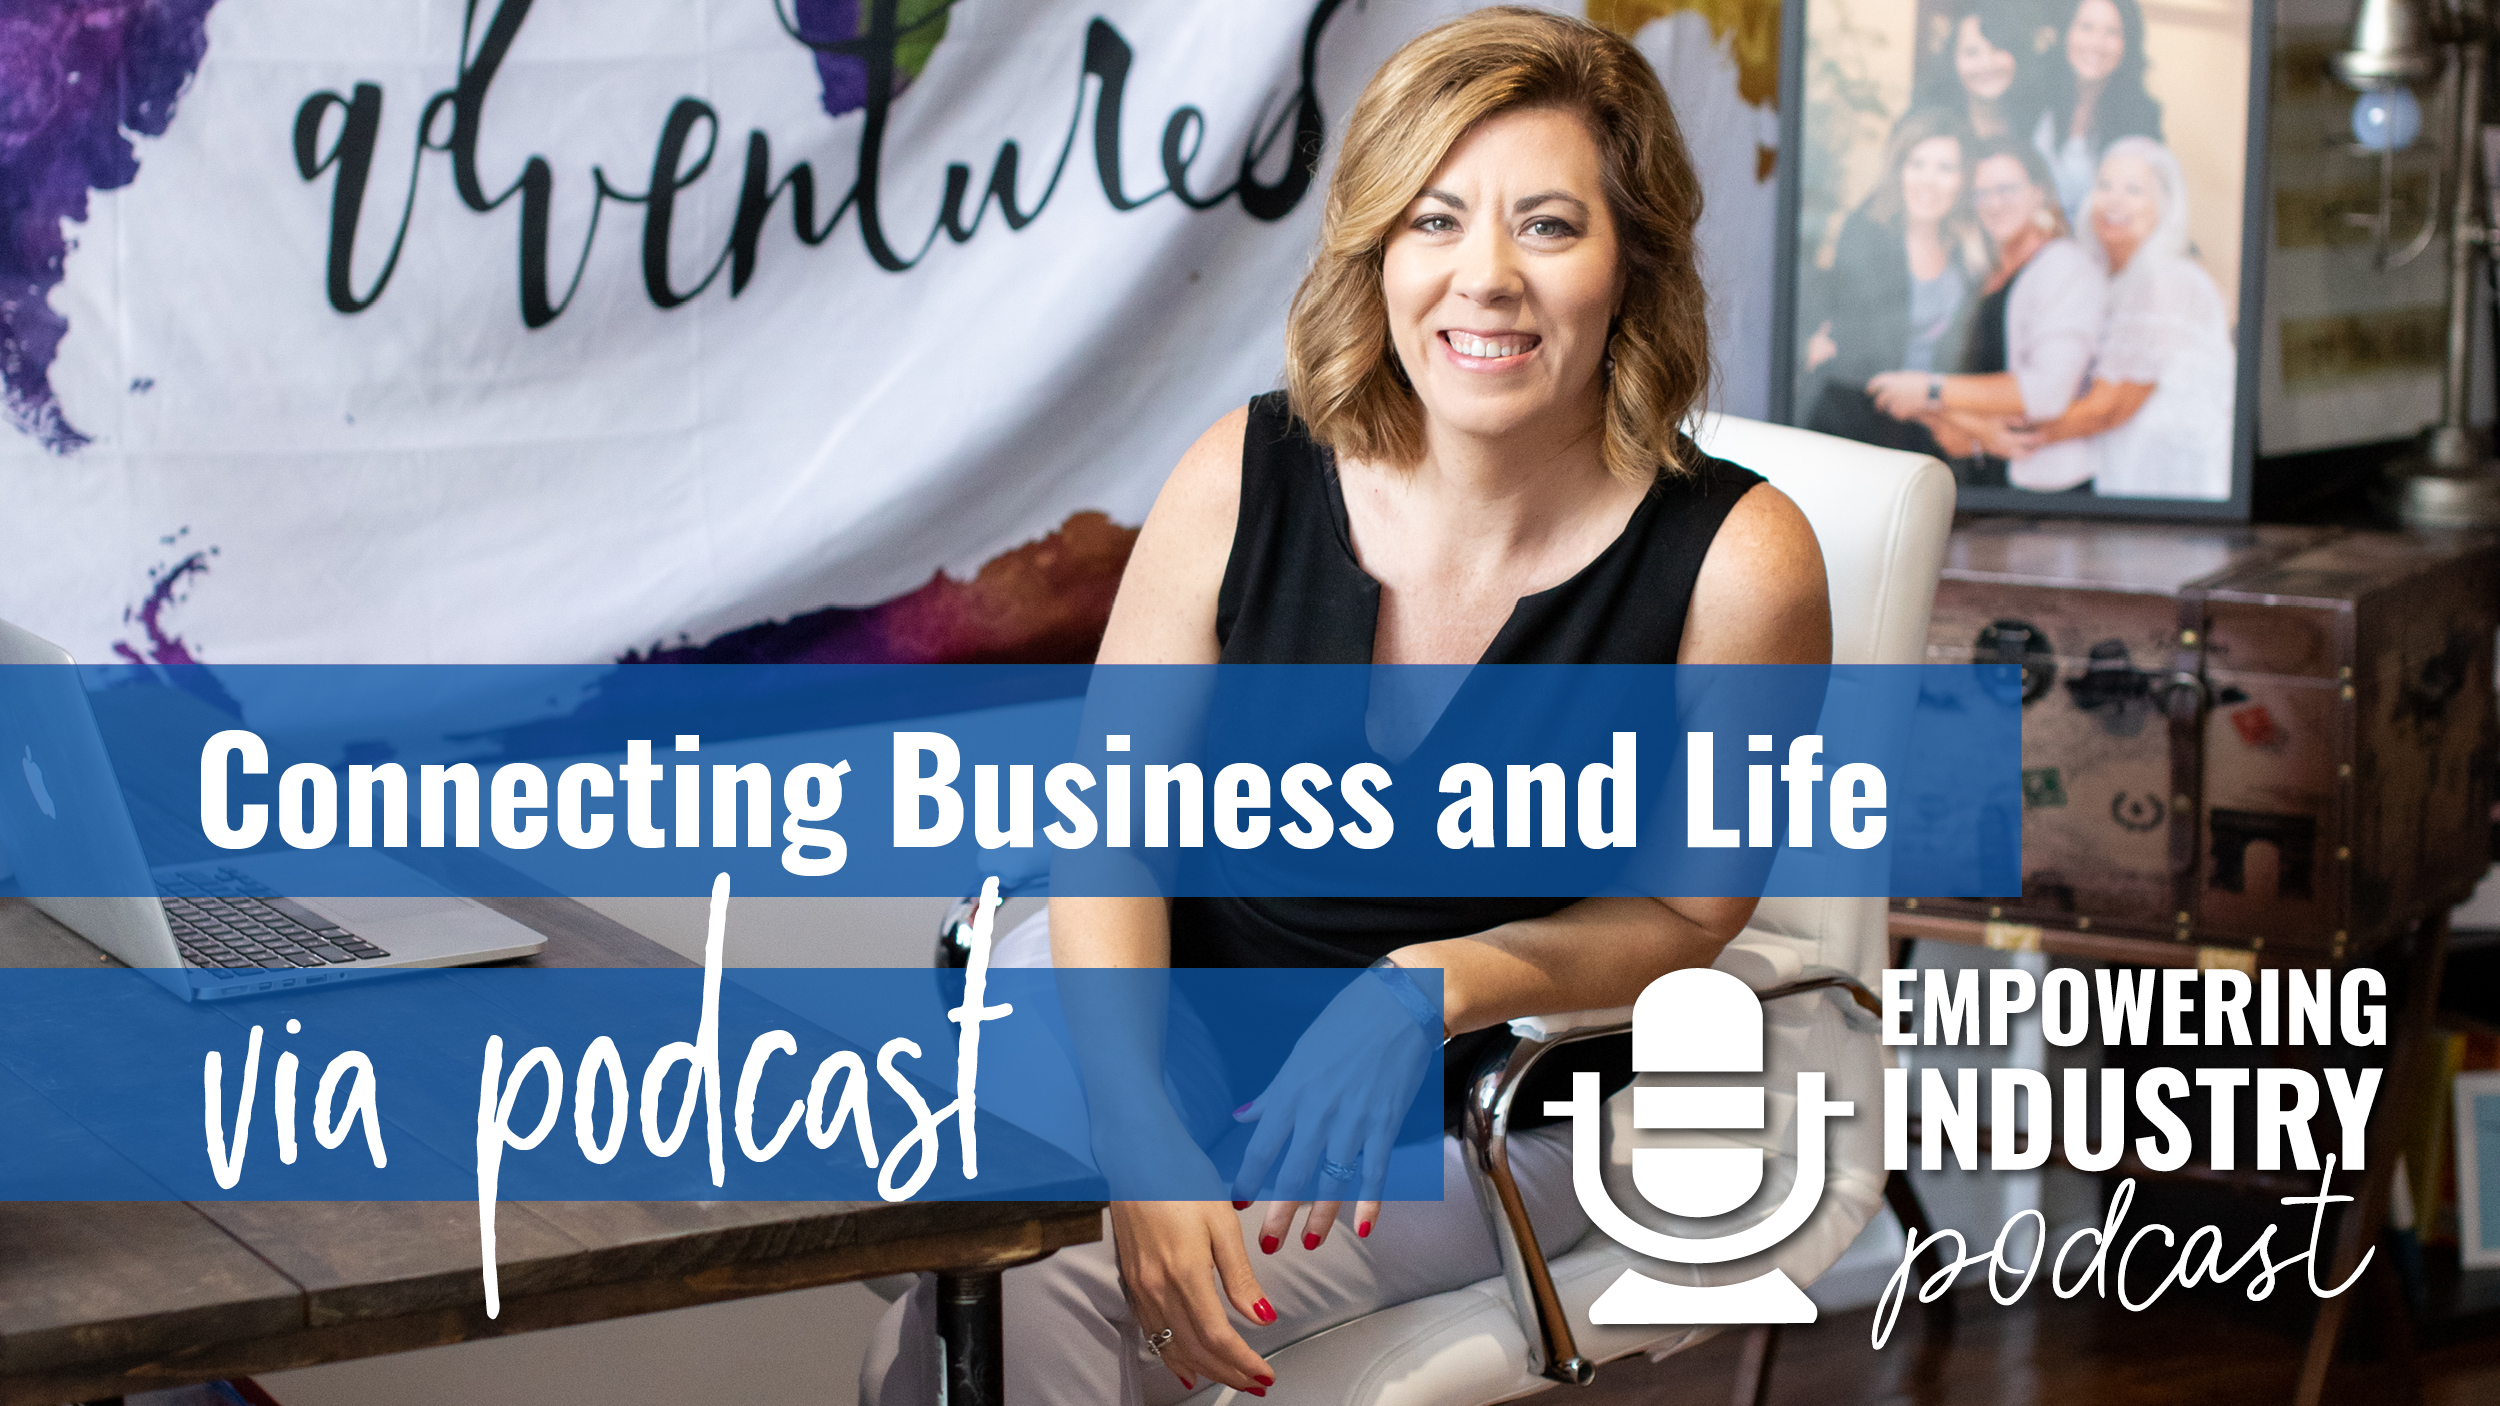 Connecting Business and Life via Podcast promo image